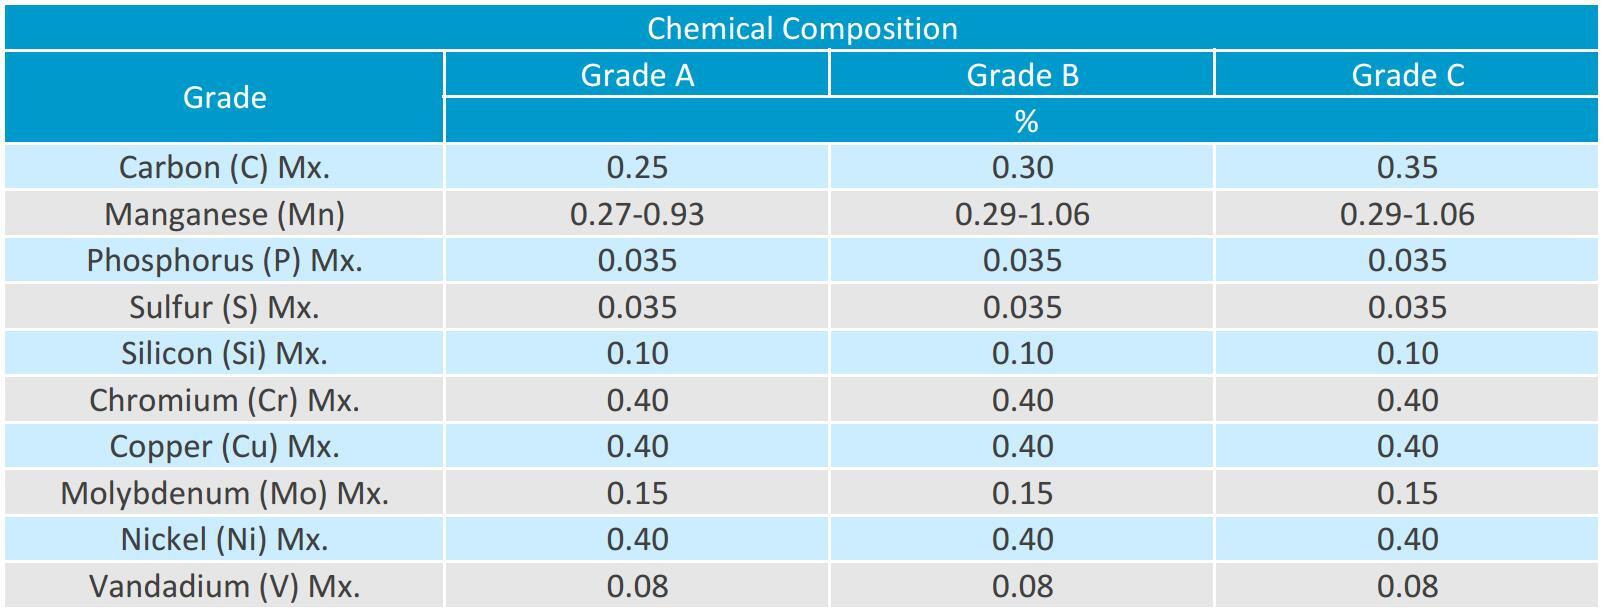 astm a106 b chemical composition